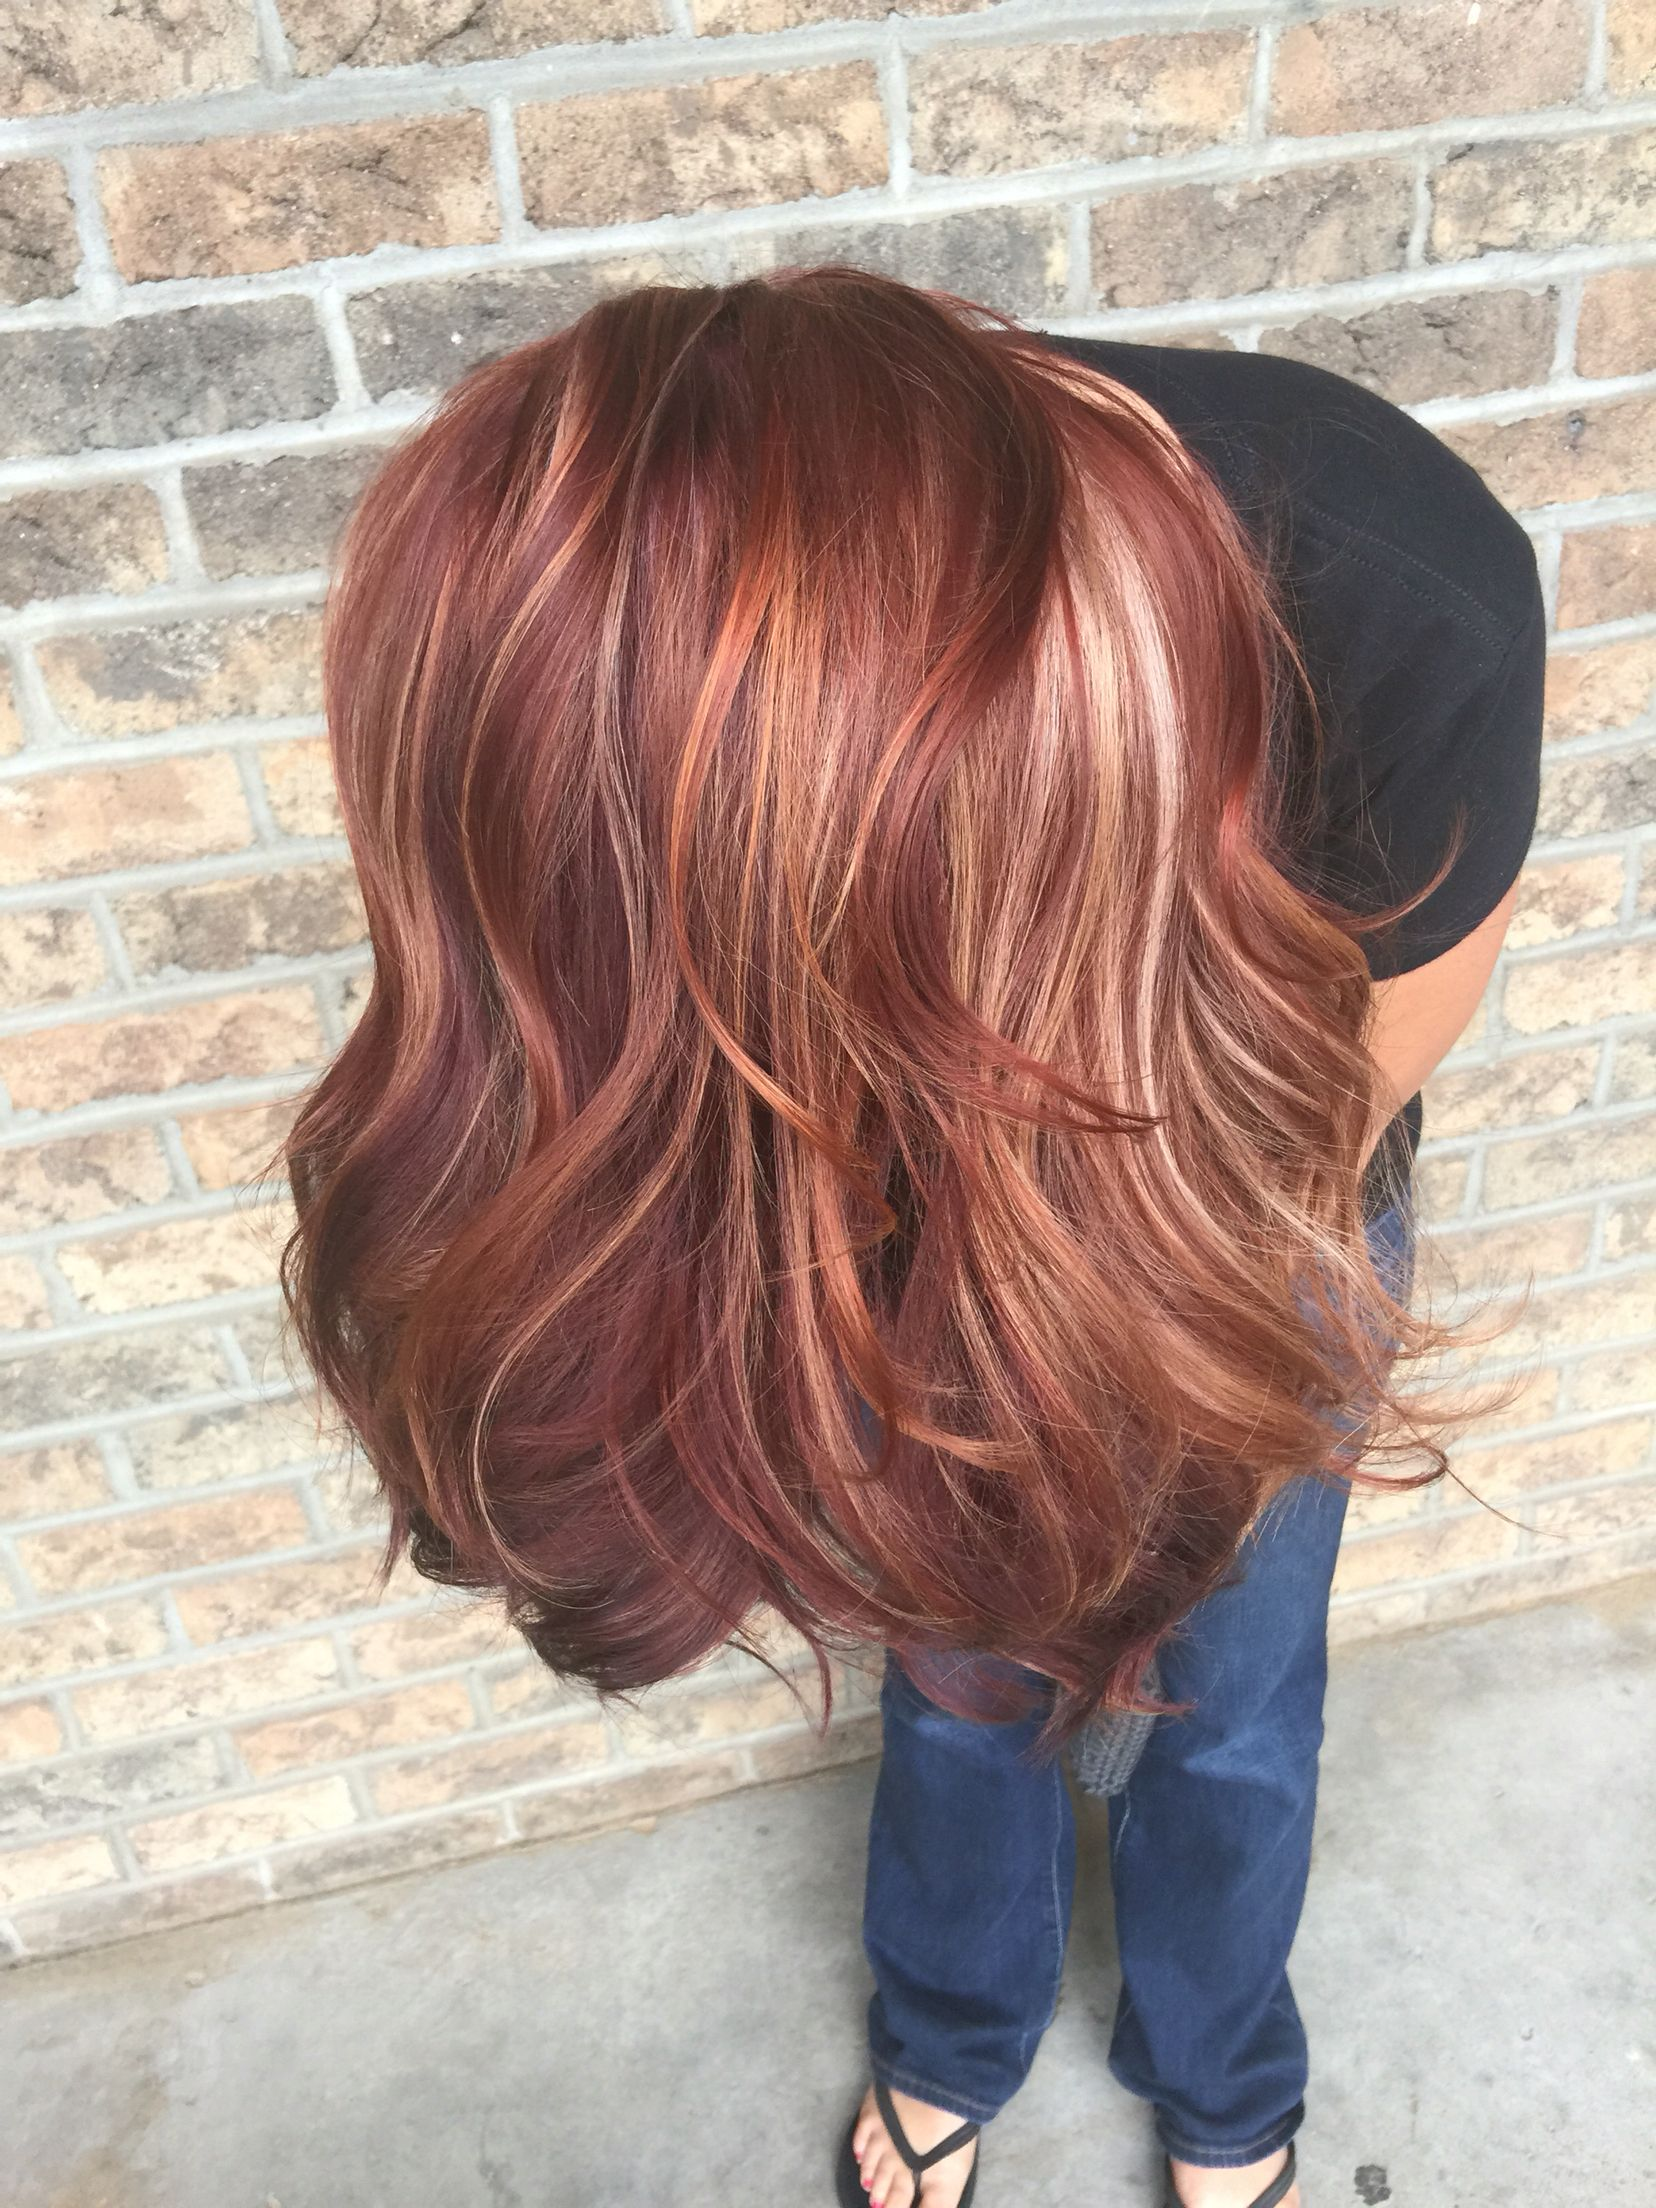 All The Fall Hair Colors Red Blonde Red Violet Copper Fall Hair Hair Styles Spring Hair Color Fall Hair Colors